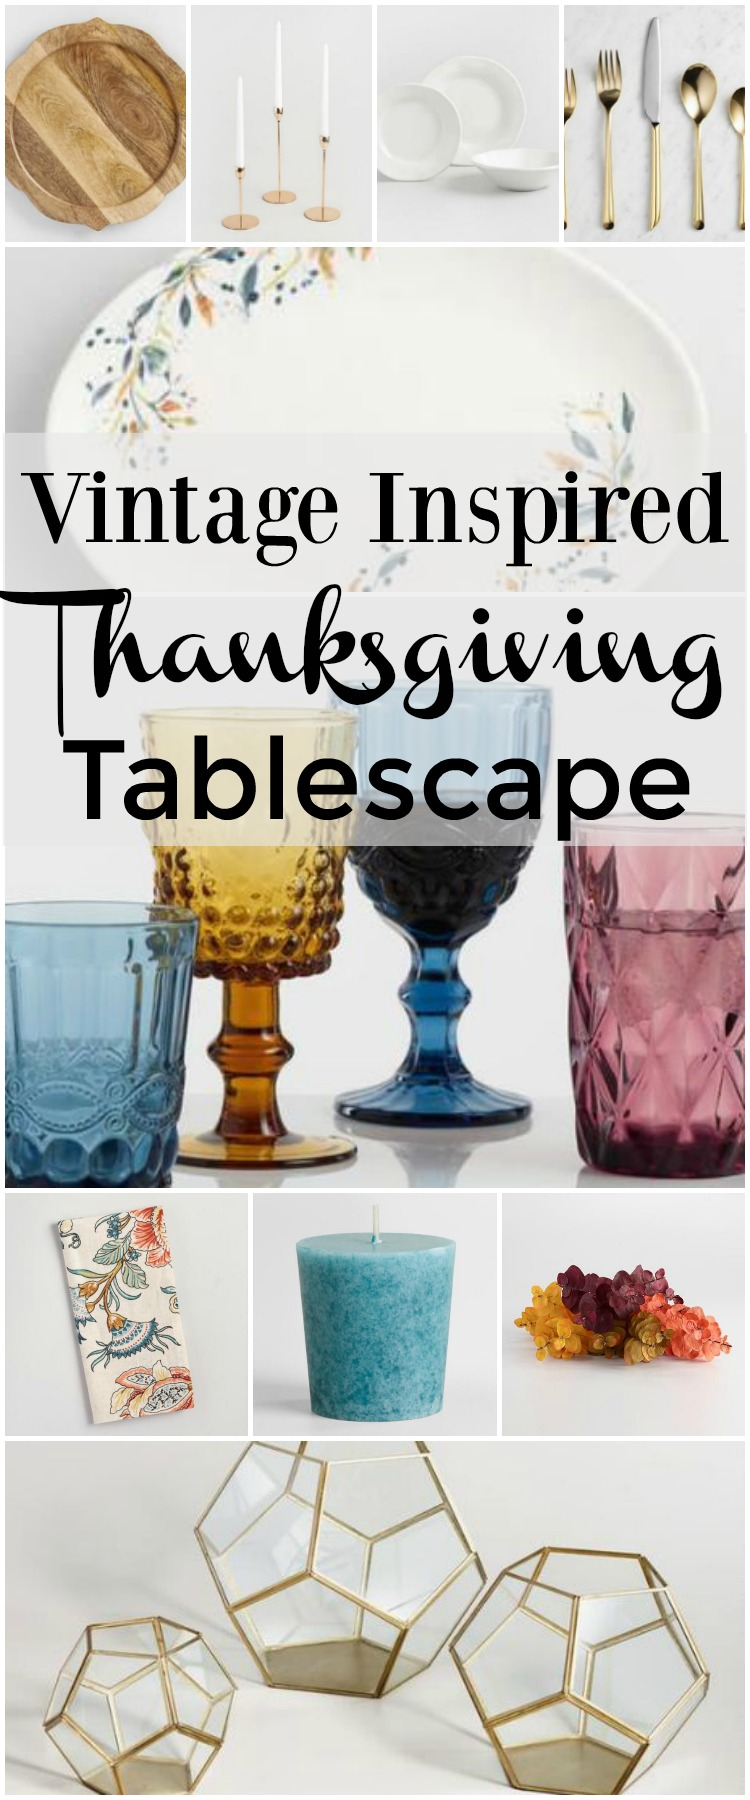 Create a memorable vintage inspired thanksgiving tablescape for your friends and family with a little help from Cost Plus World Market, for more tips visit www.homewithkeki.com #ad #worldmarkettribe #thanksgiving #tablescapes